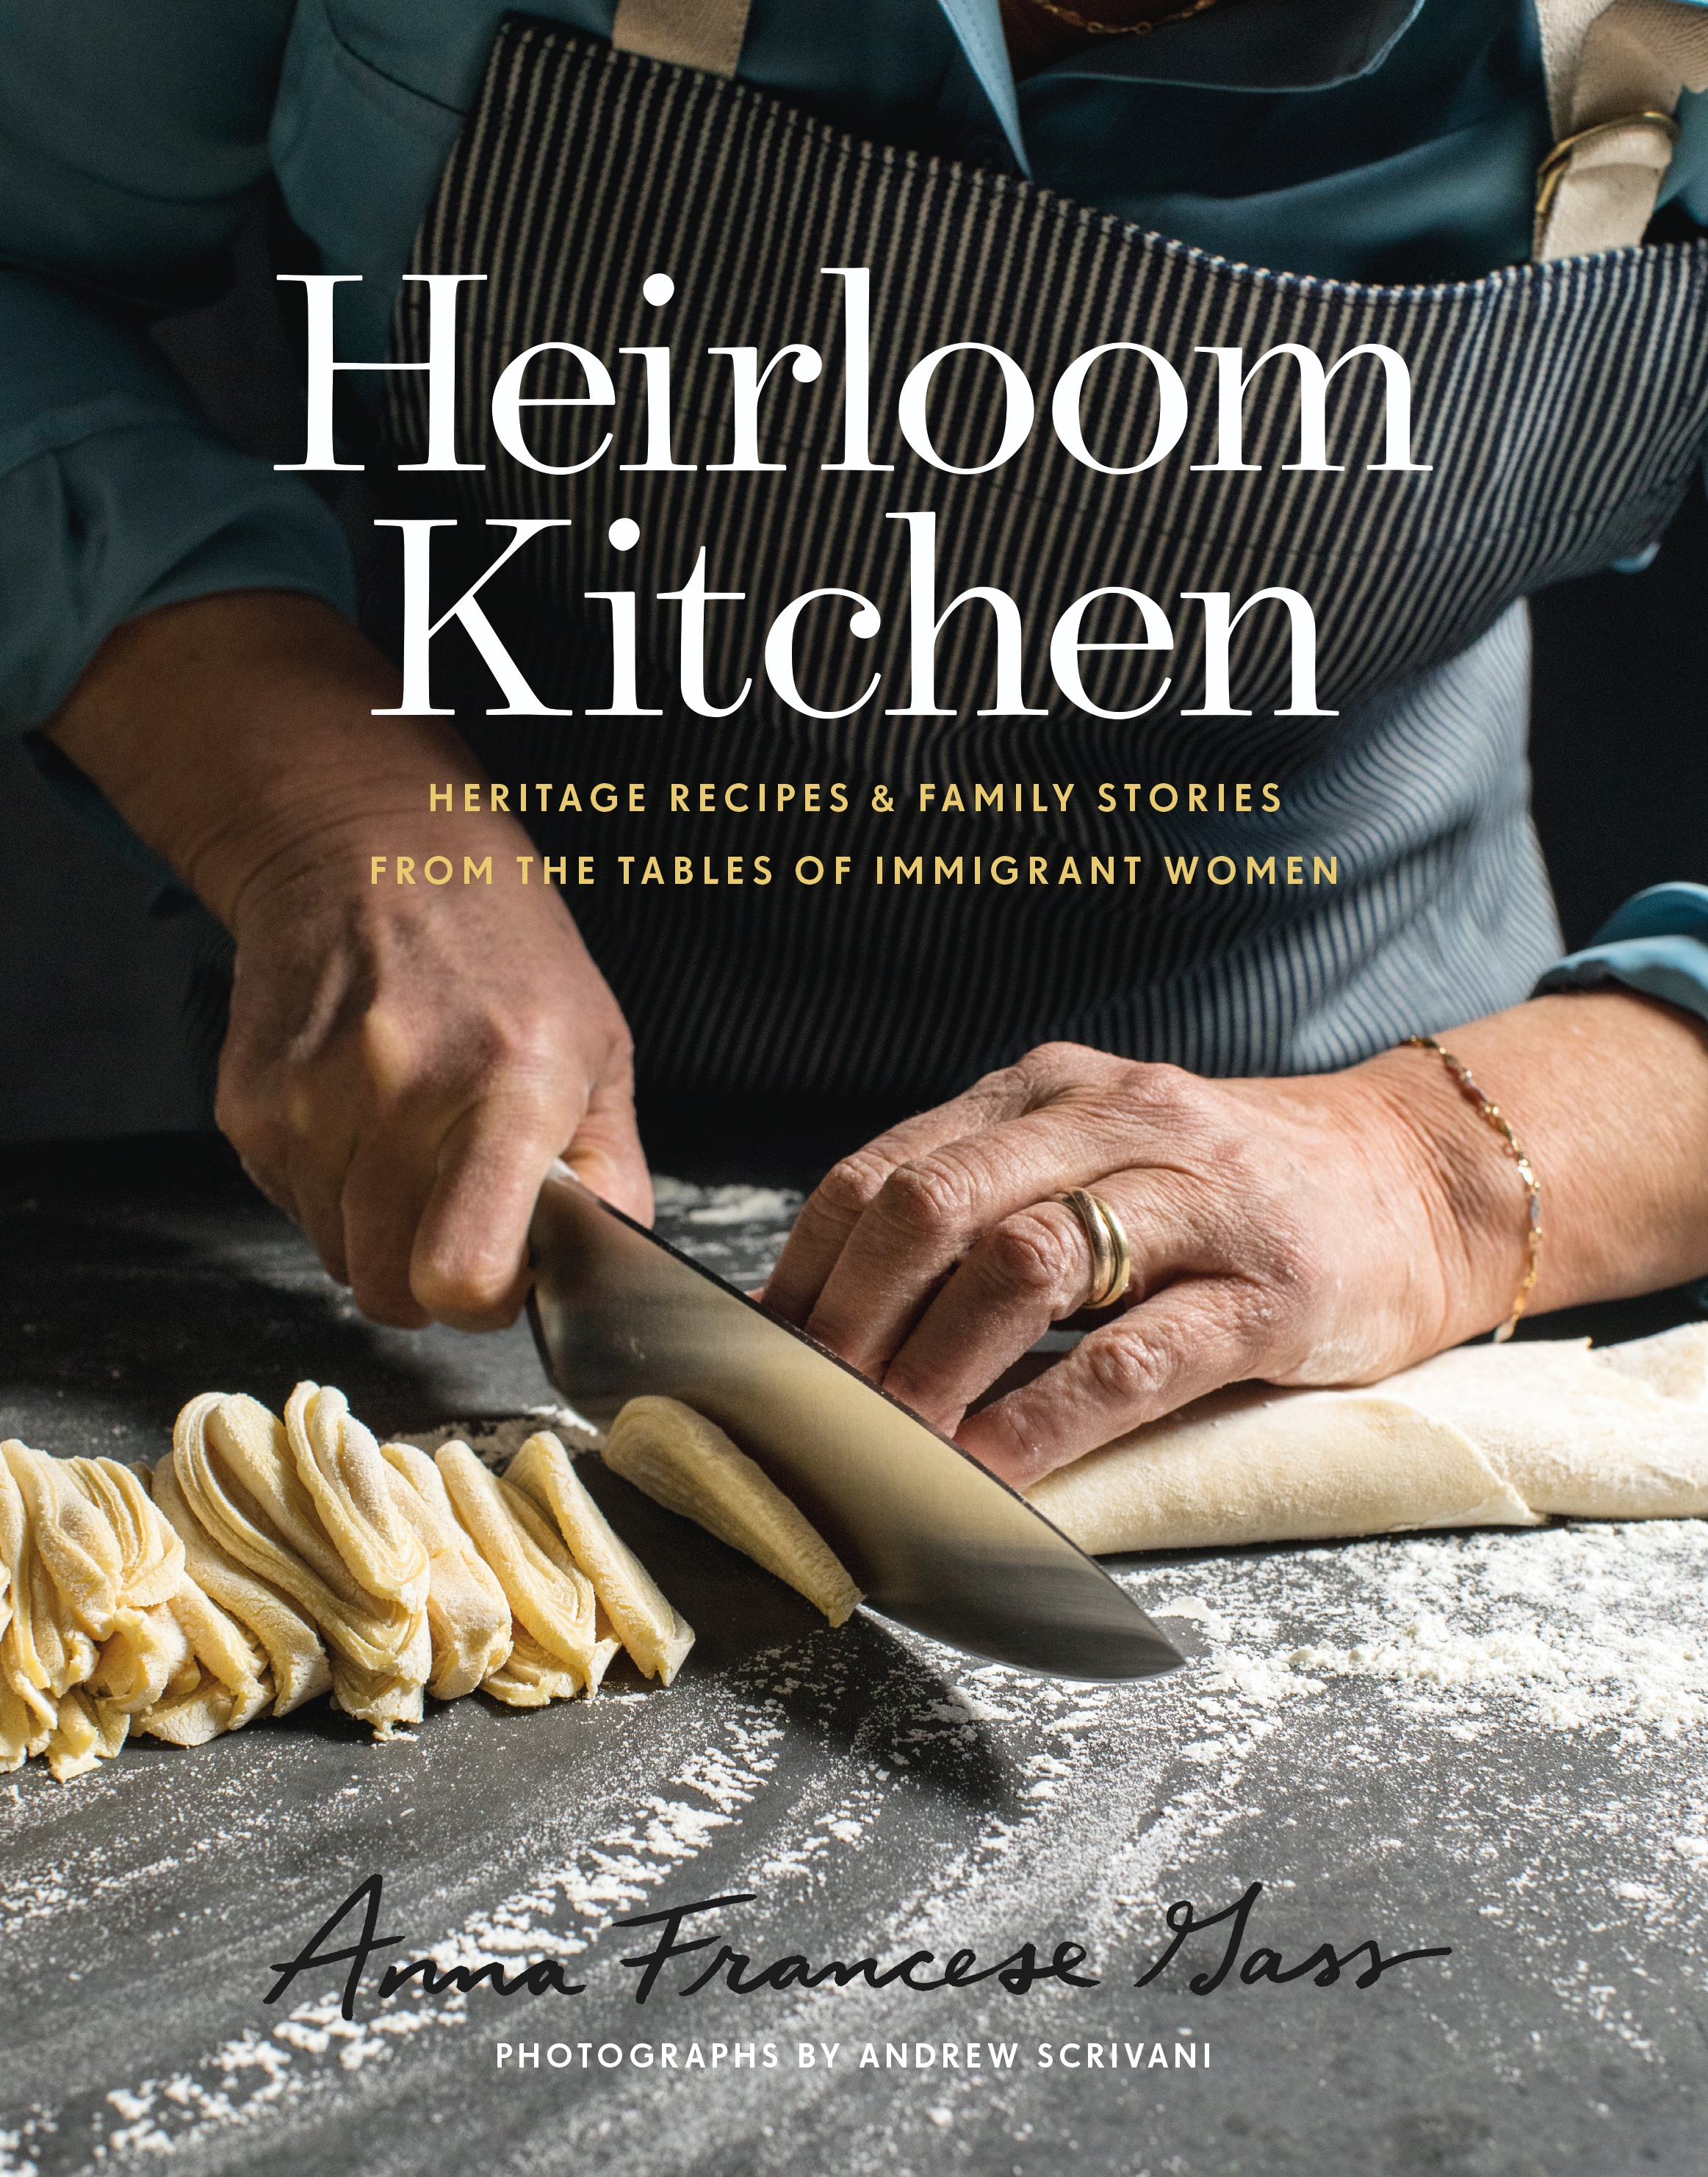 Heirloom Kitchen Final Cover.JPG.jpeg